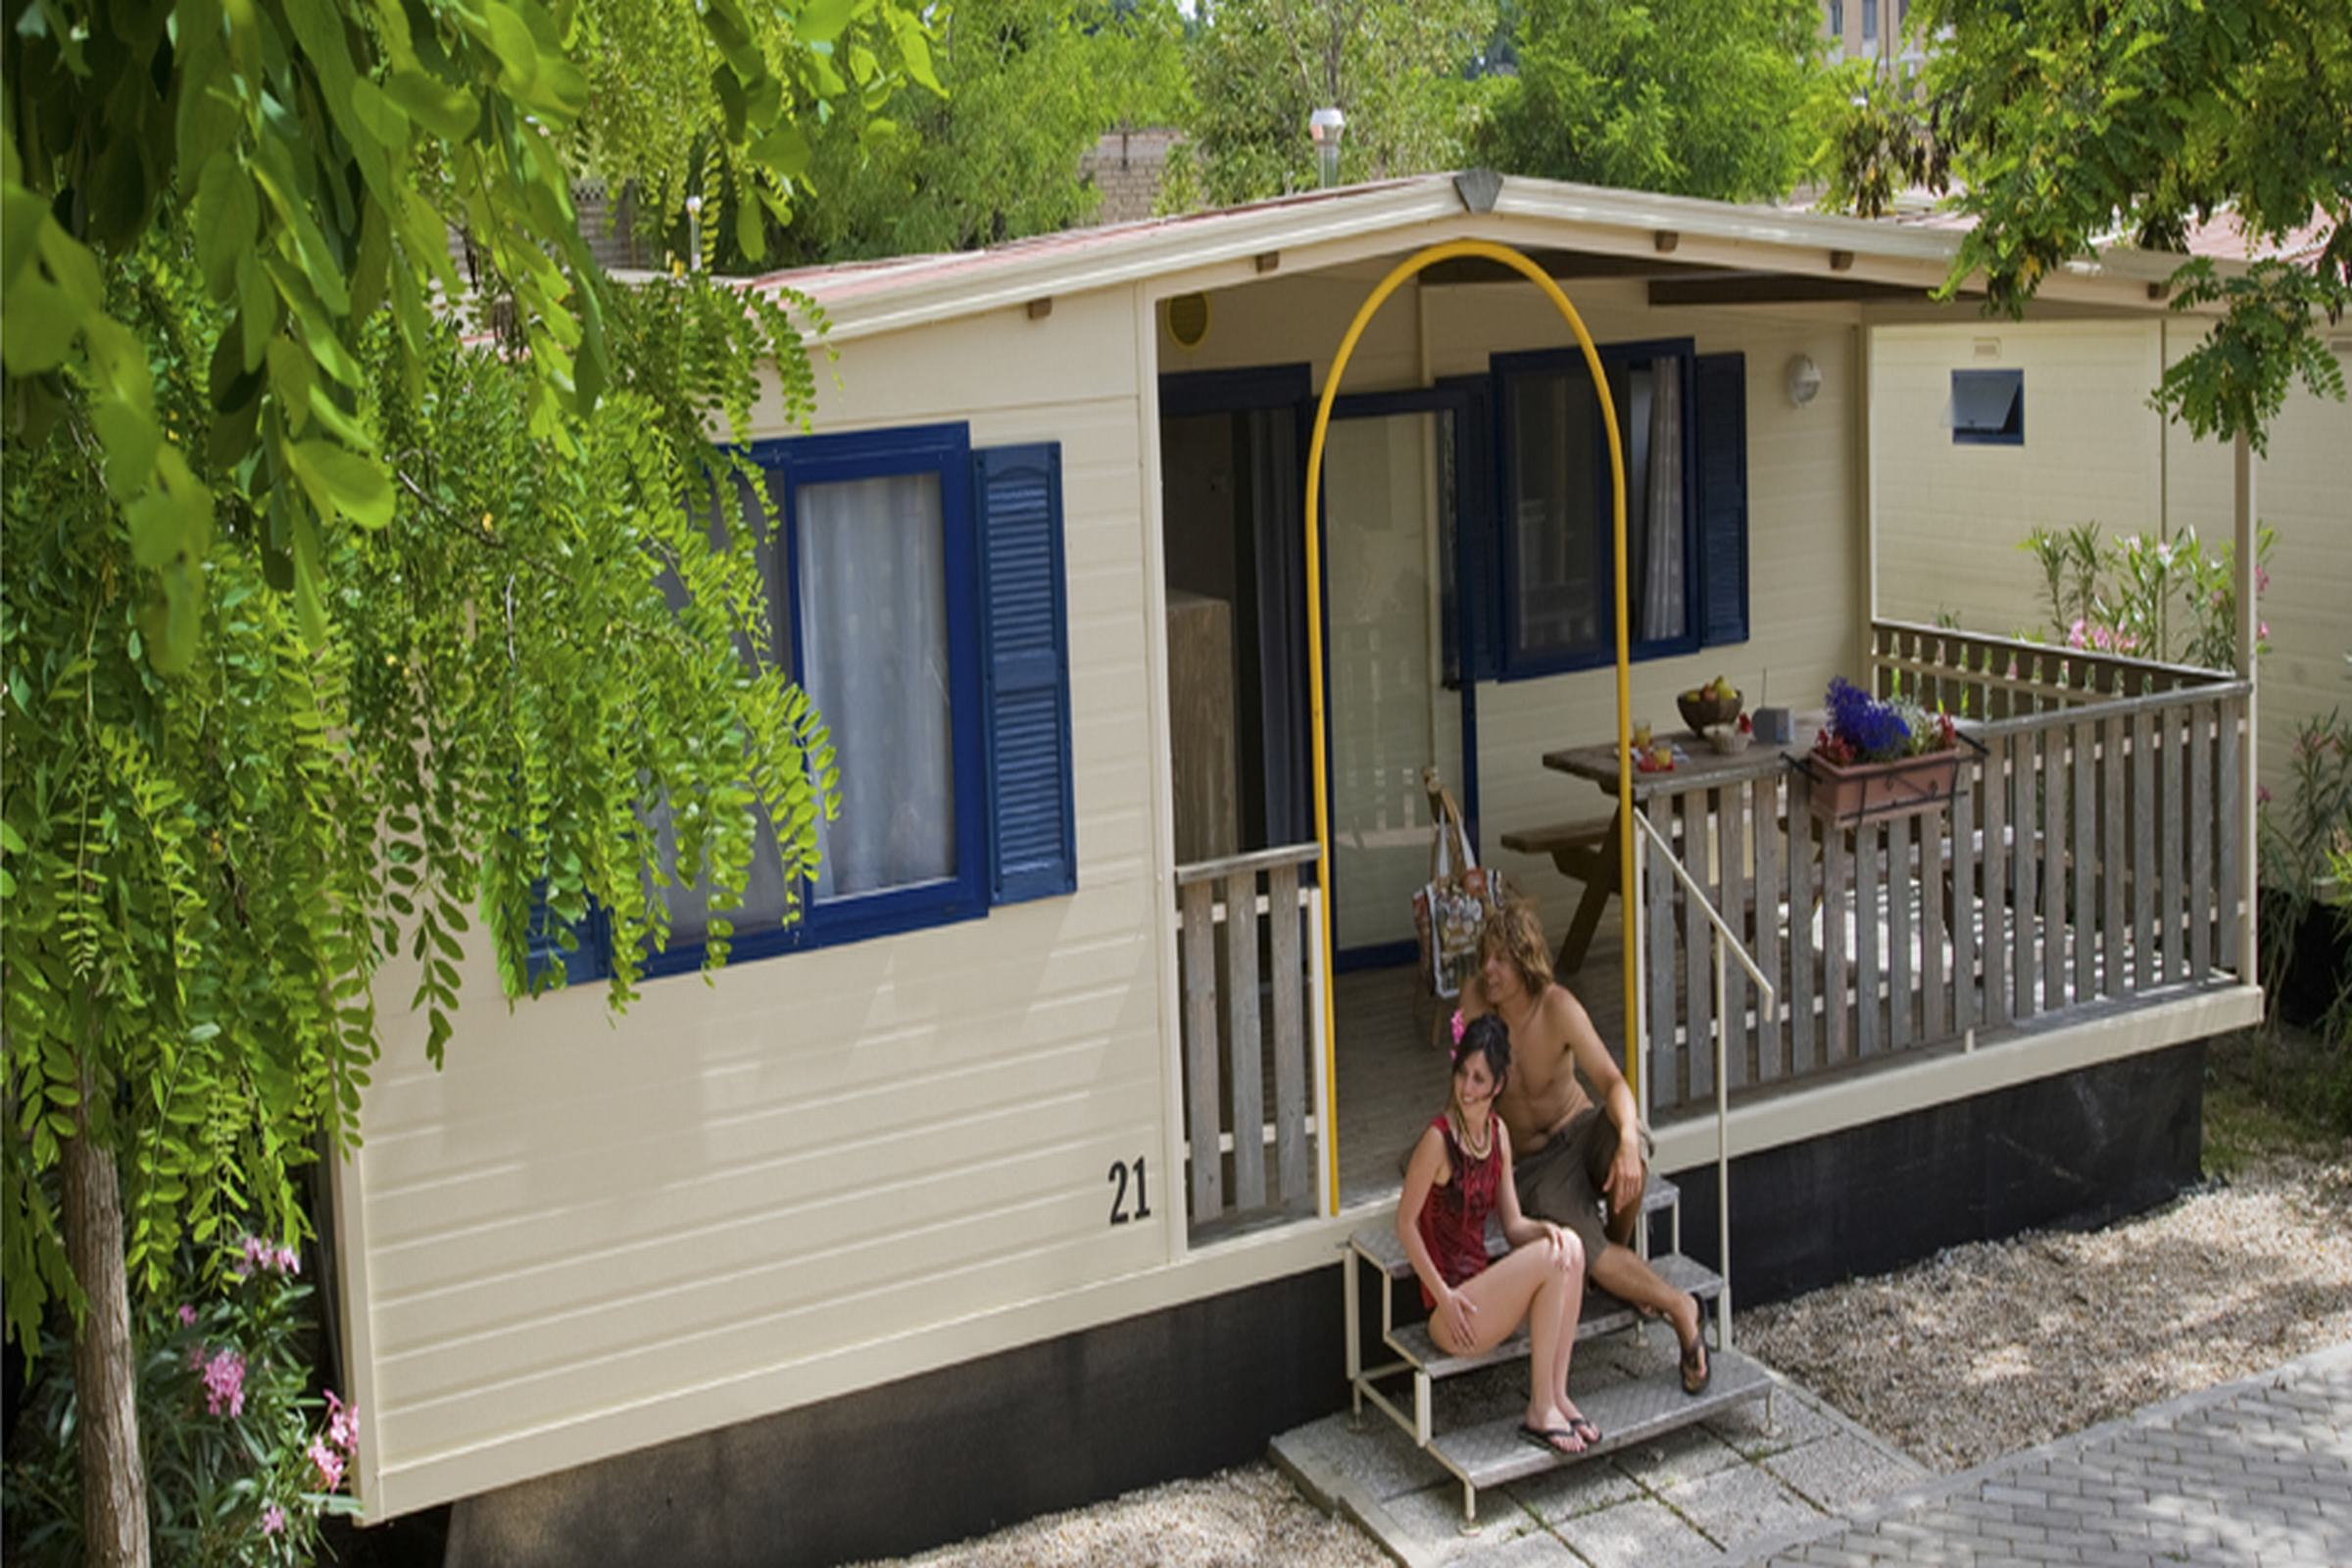 Chalet Camping Roma